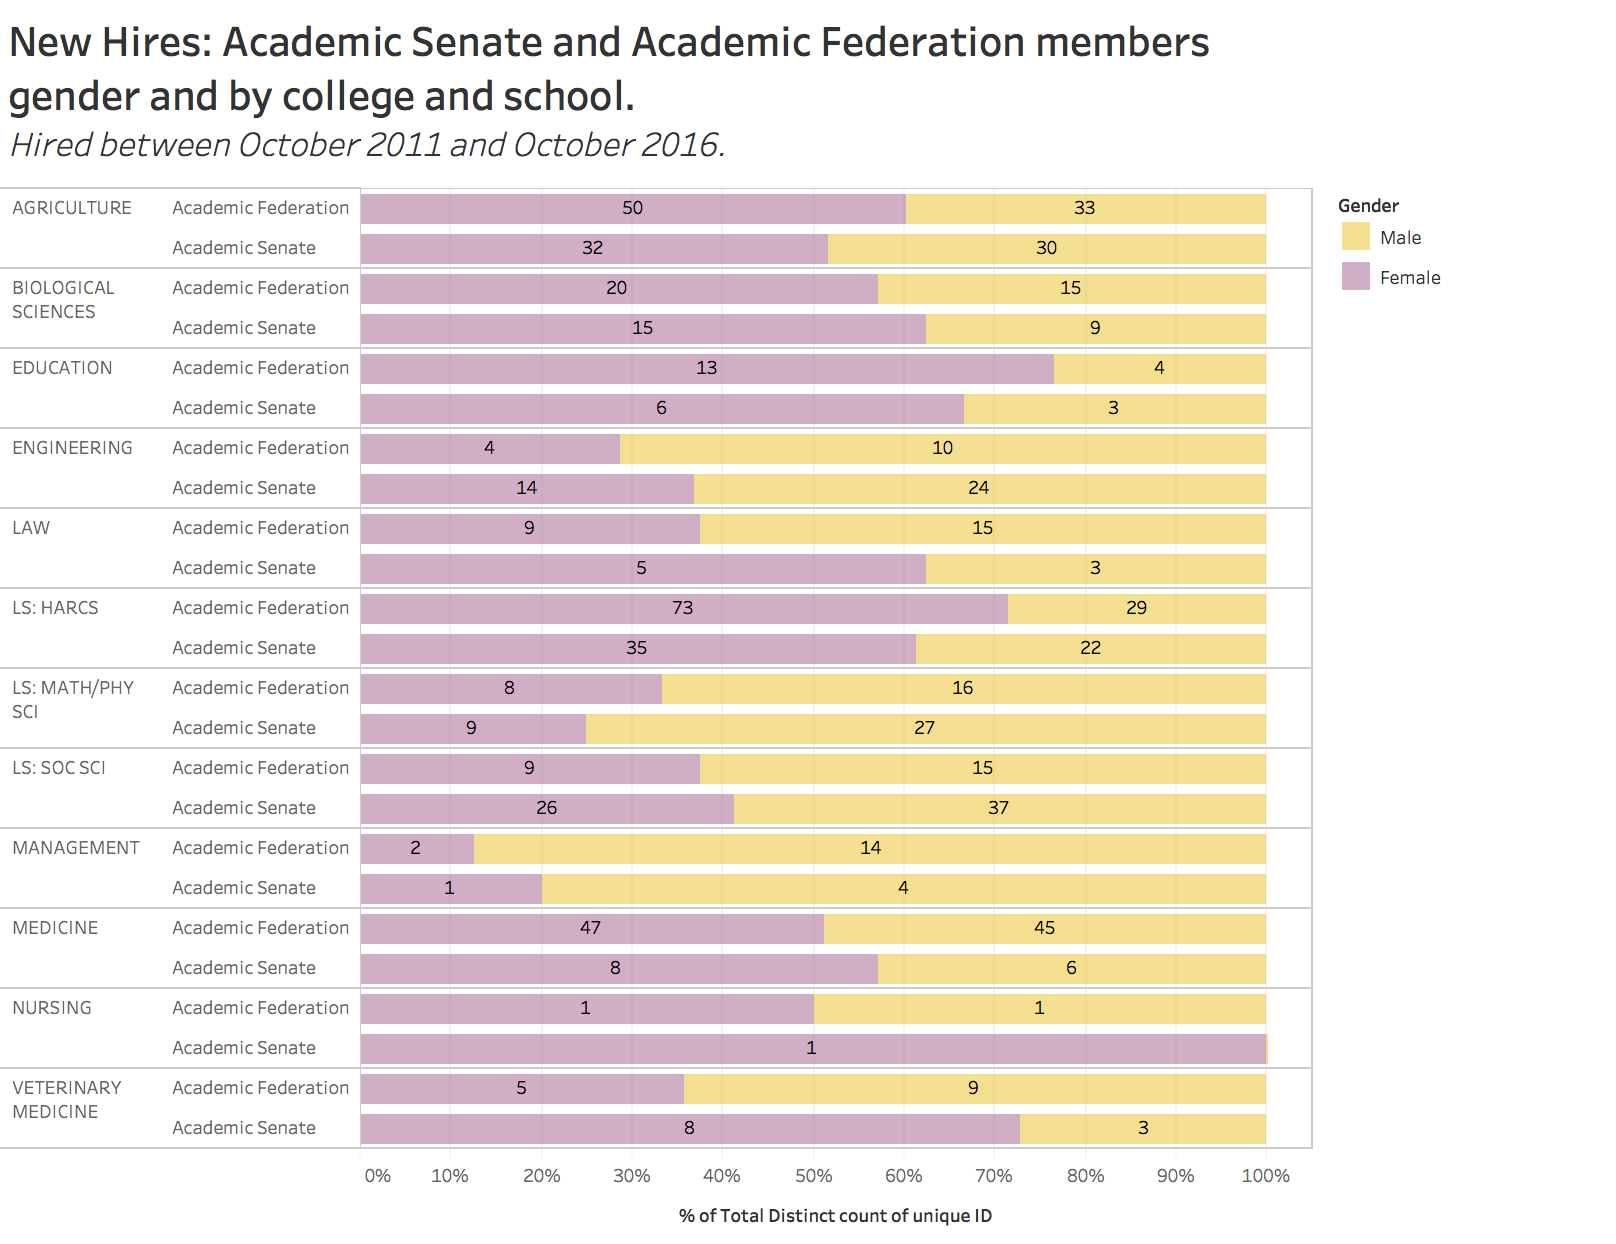 New hires: academic senate and academic federation members gender and by college and school